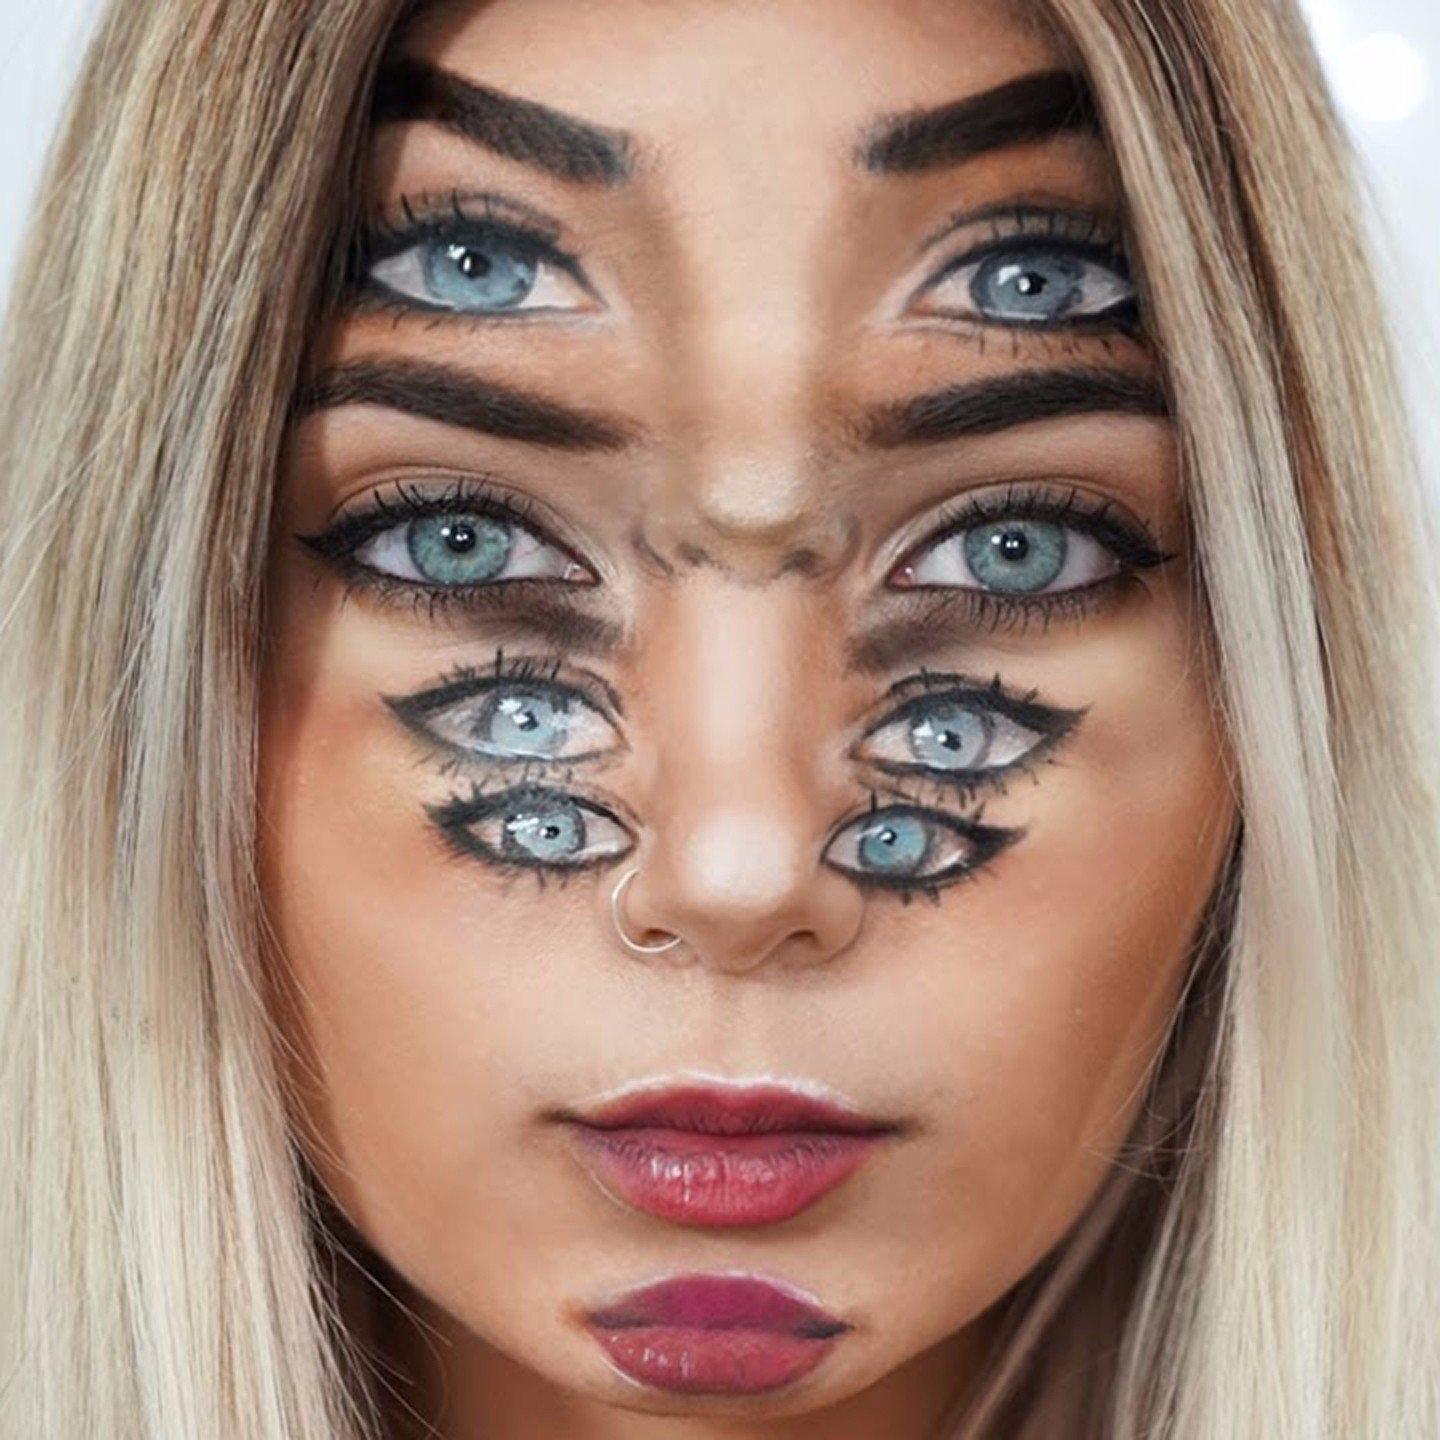 Makeup with pictures